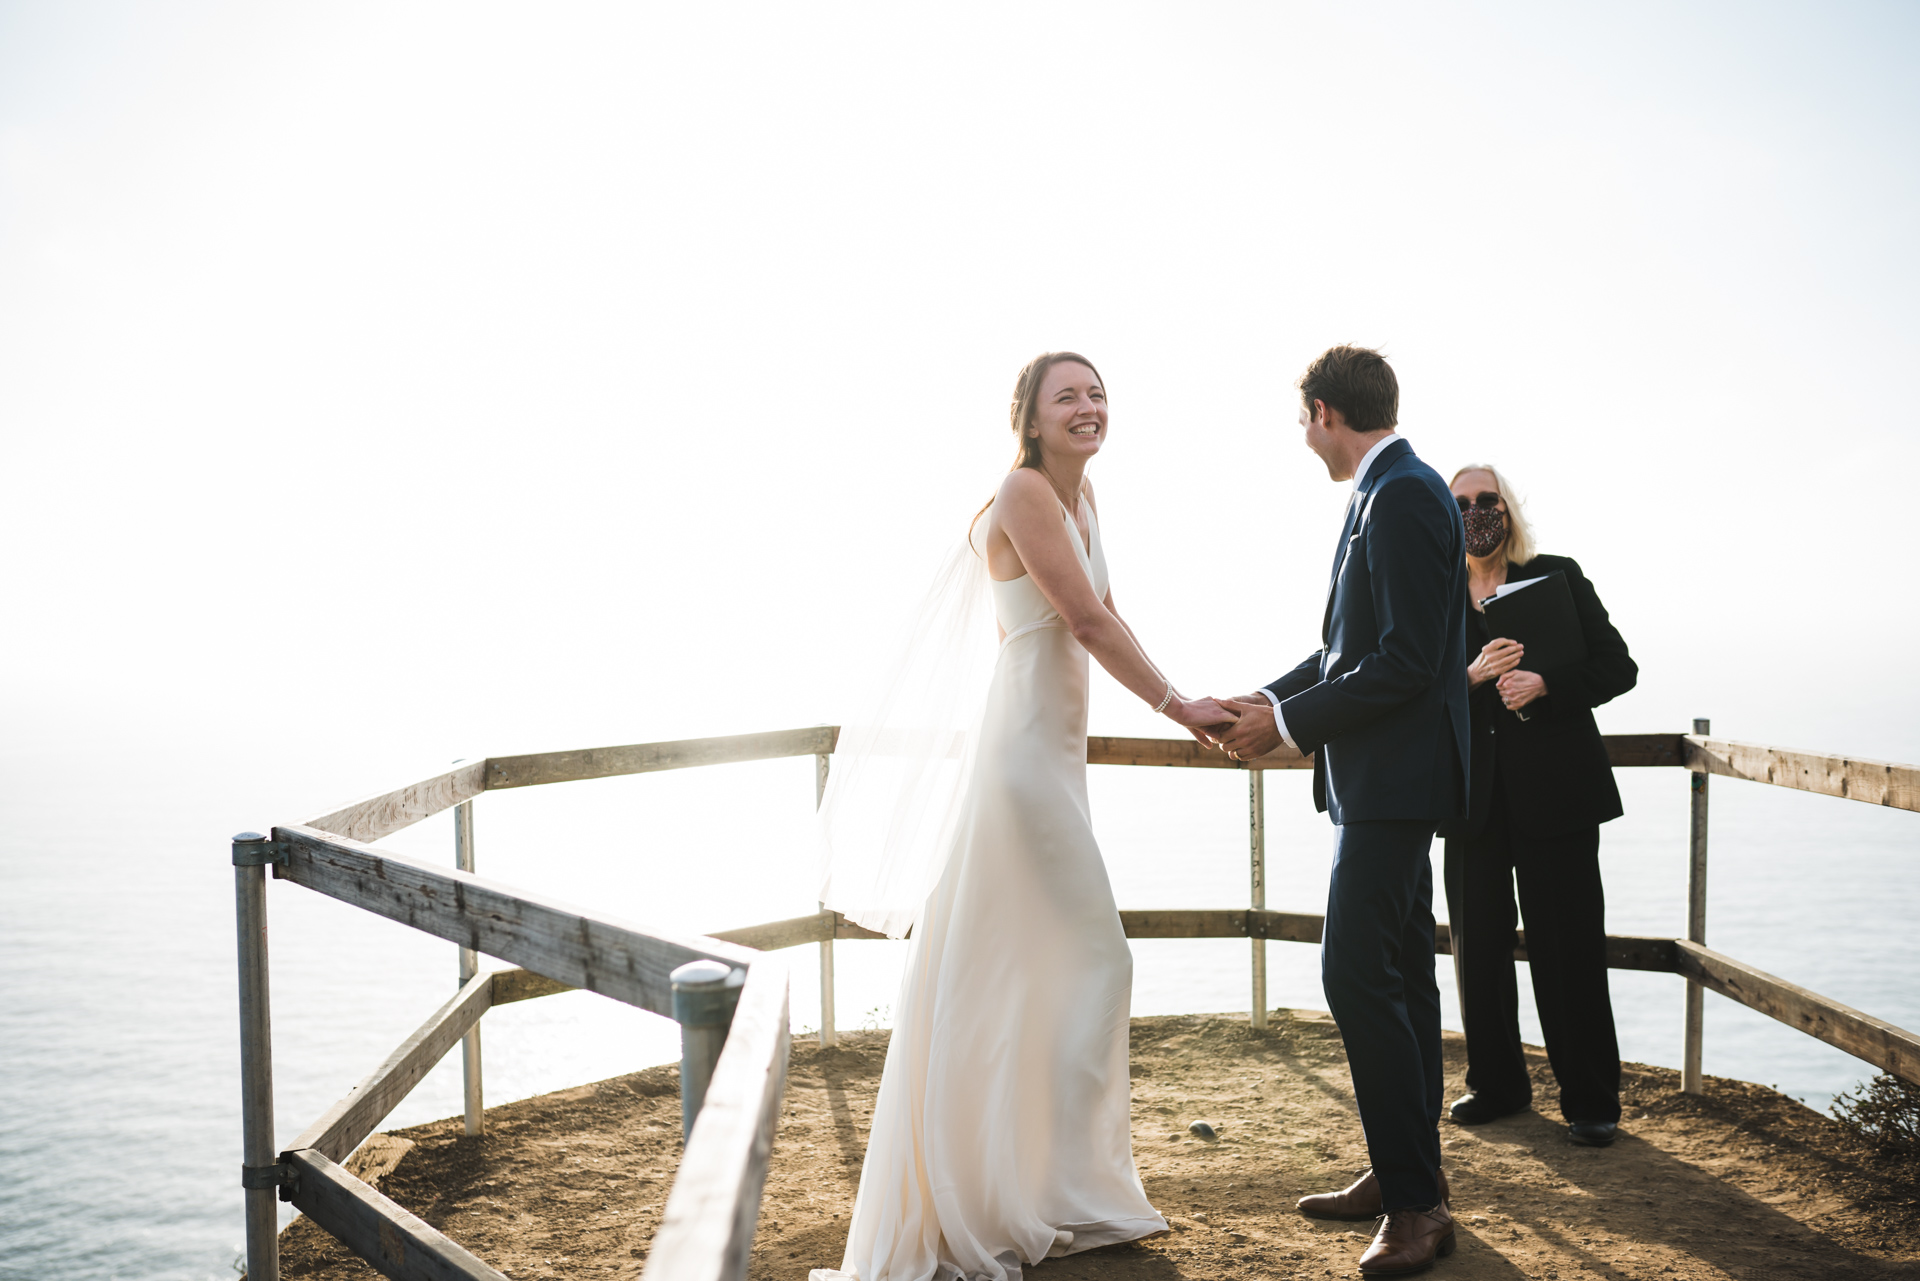 Golden Gate National Recreation Area Wedding Photo | An emotional moment during the beach cliffs ceremony